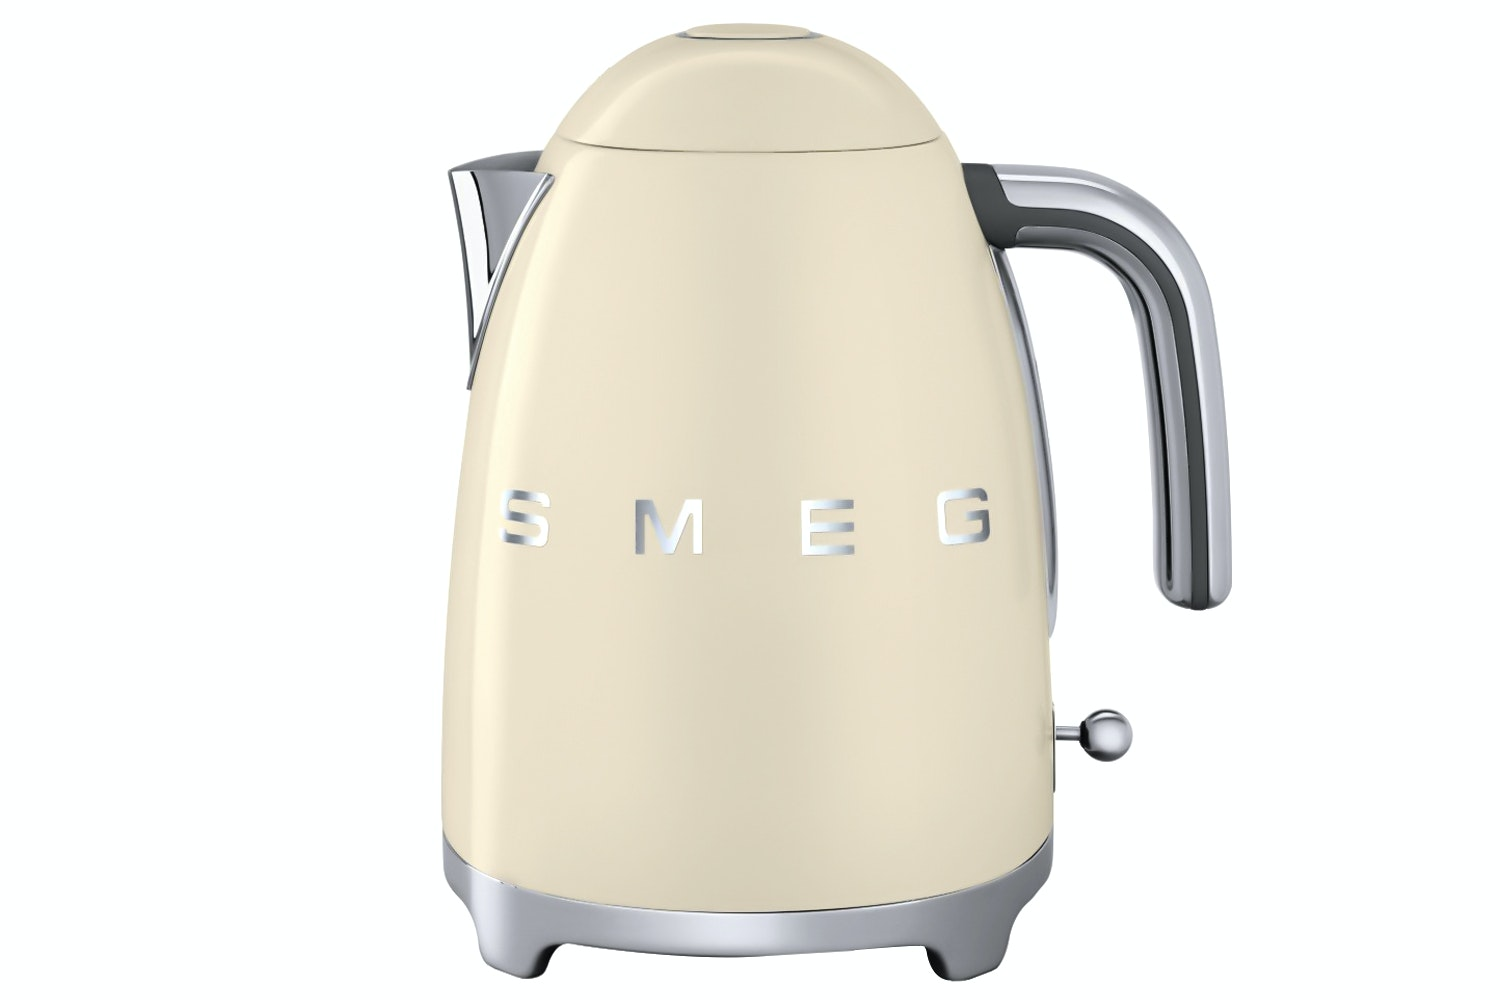 Smeg 1.7L Retro Style Kettle | Cream